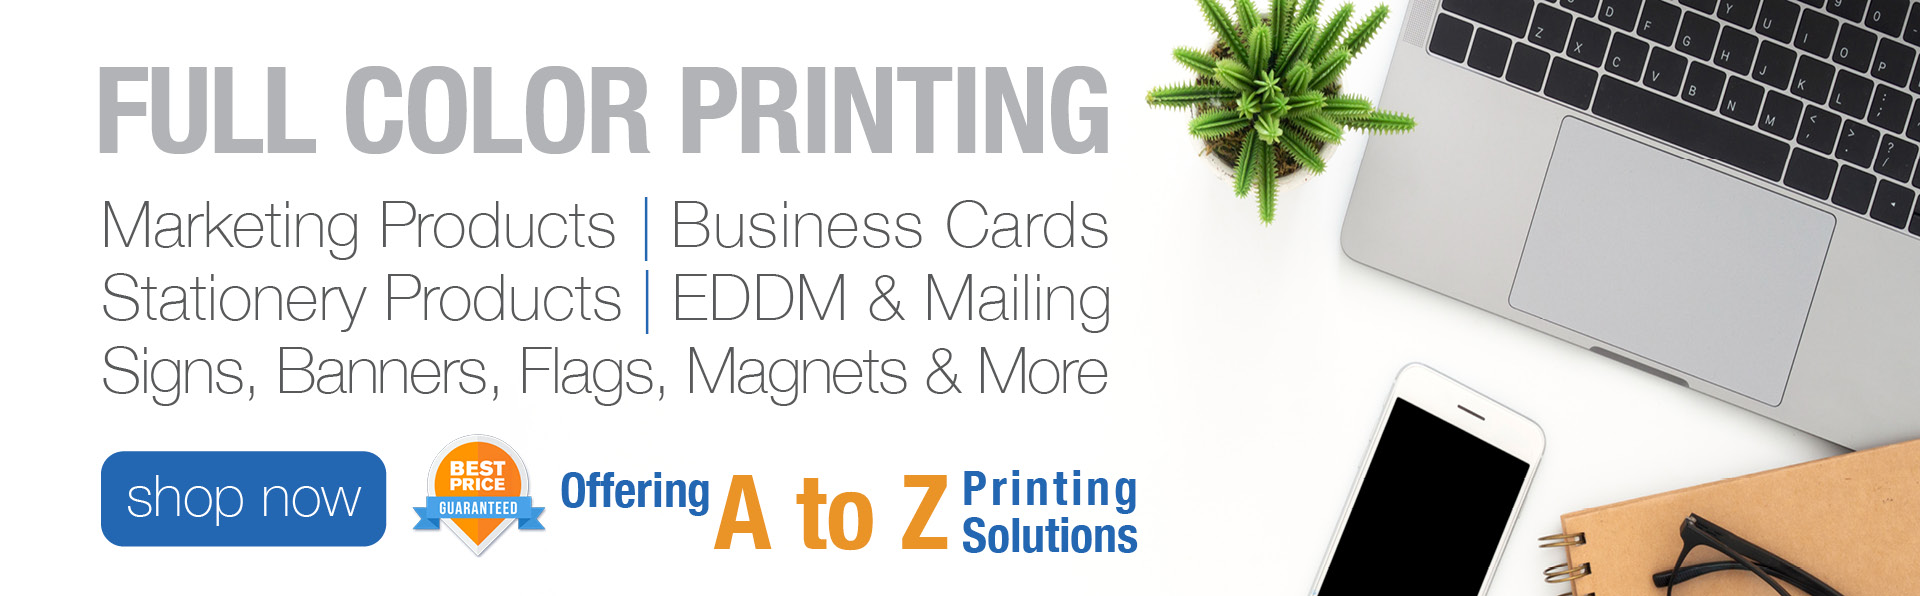 A to Z Printing Solutions